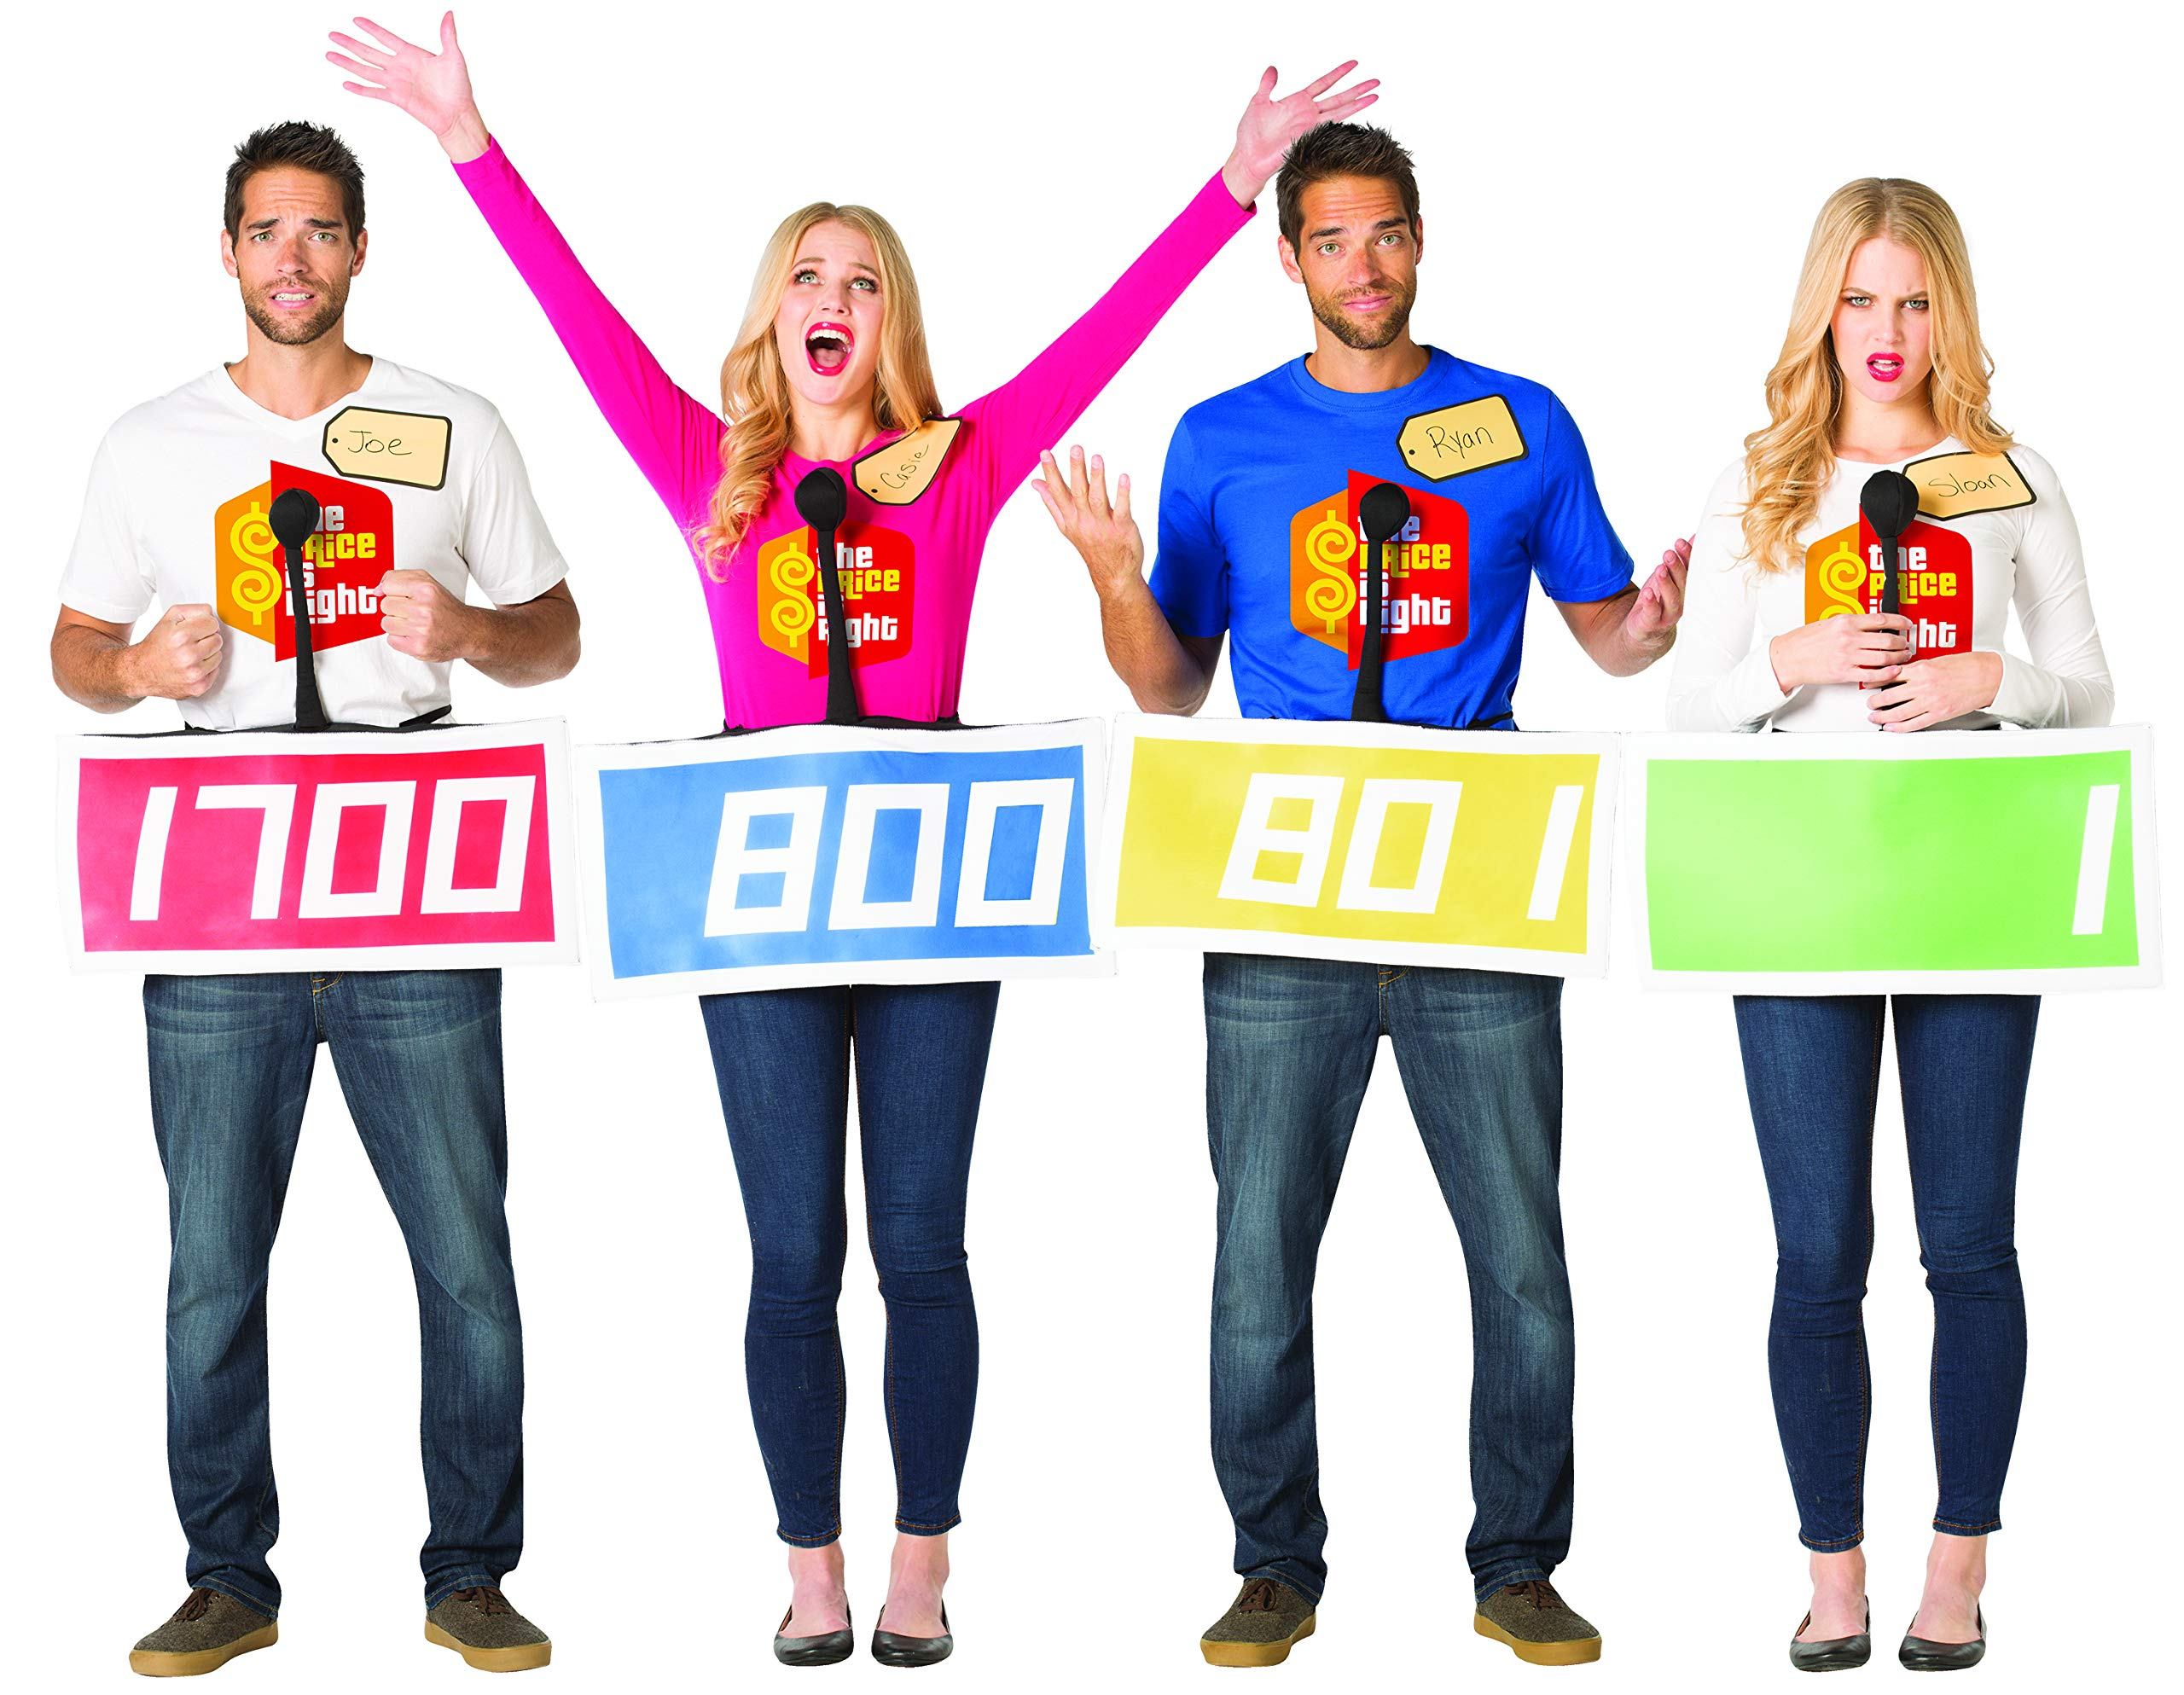 The Price is Right Contestant 4 Pack by Rasta Imposta